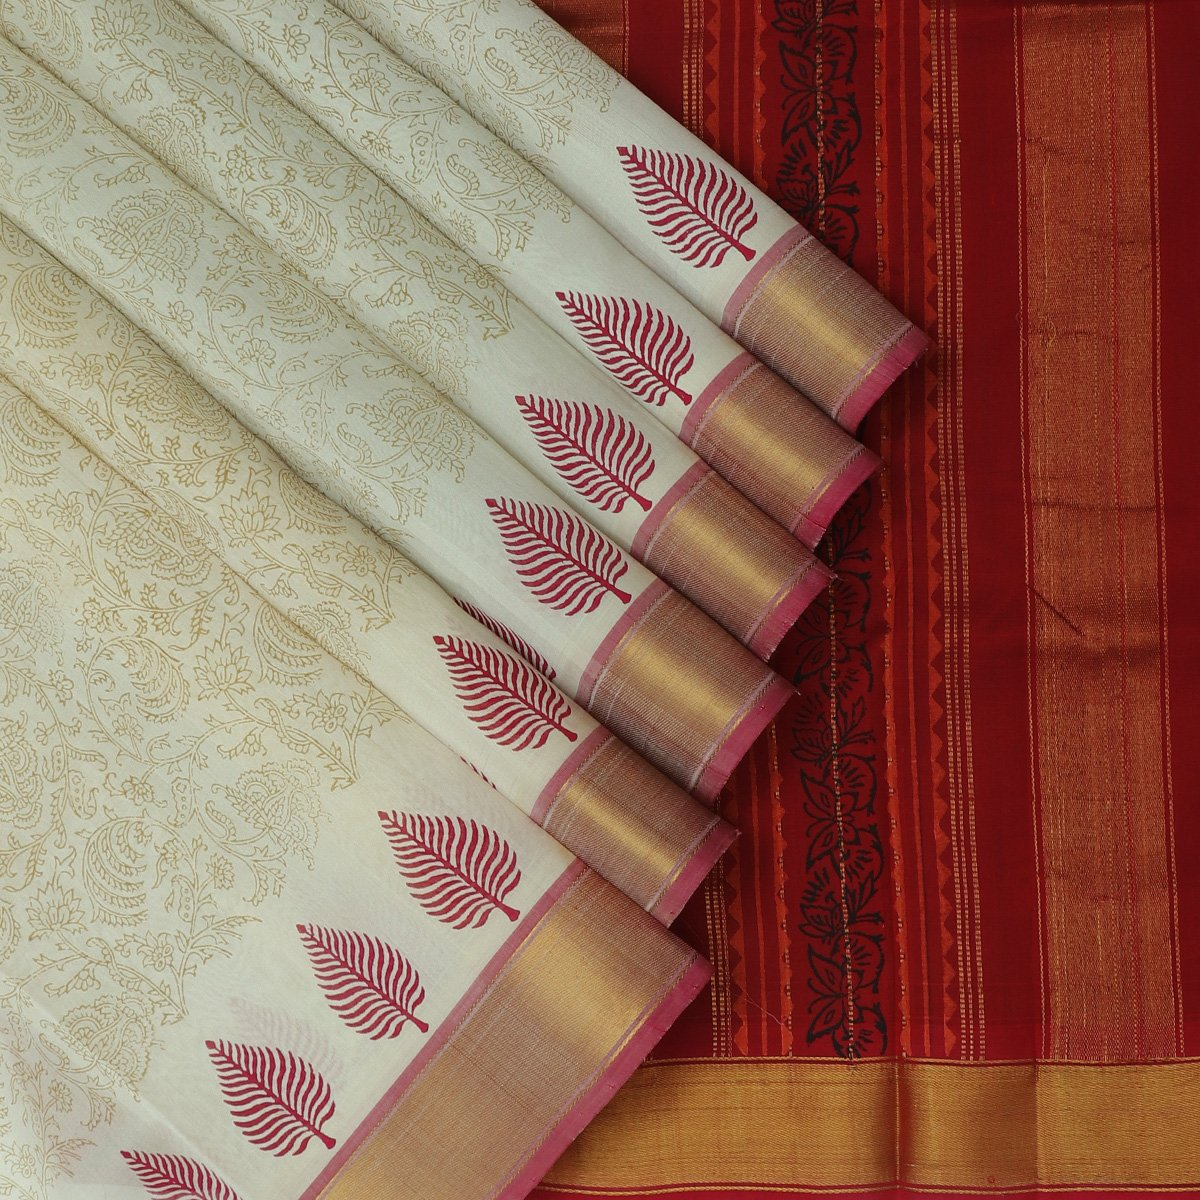 Printed Silk Cotton Saree White and Maroon with zari border